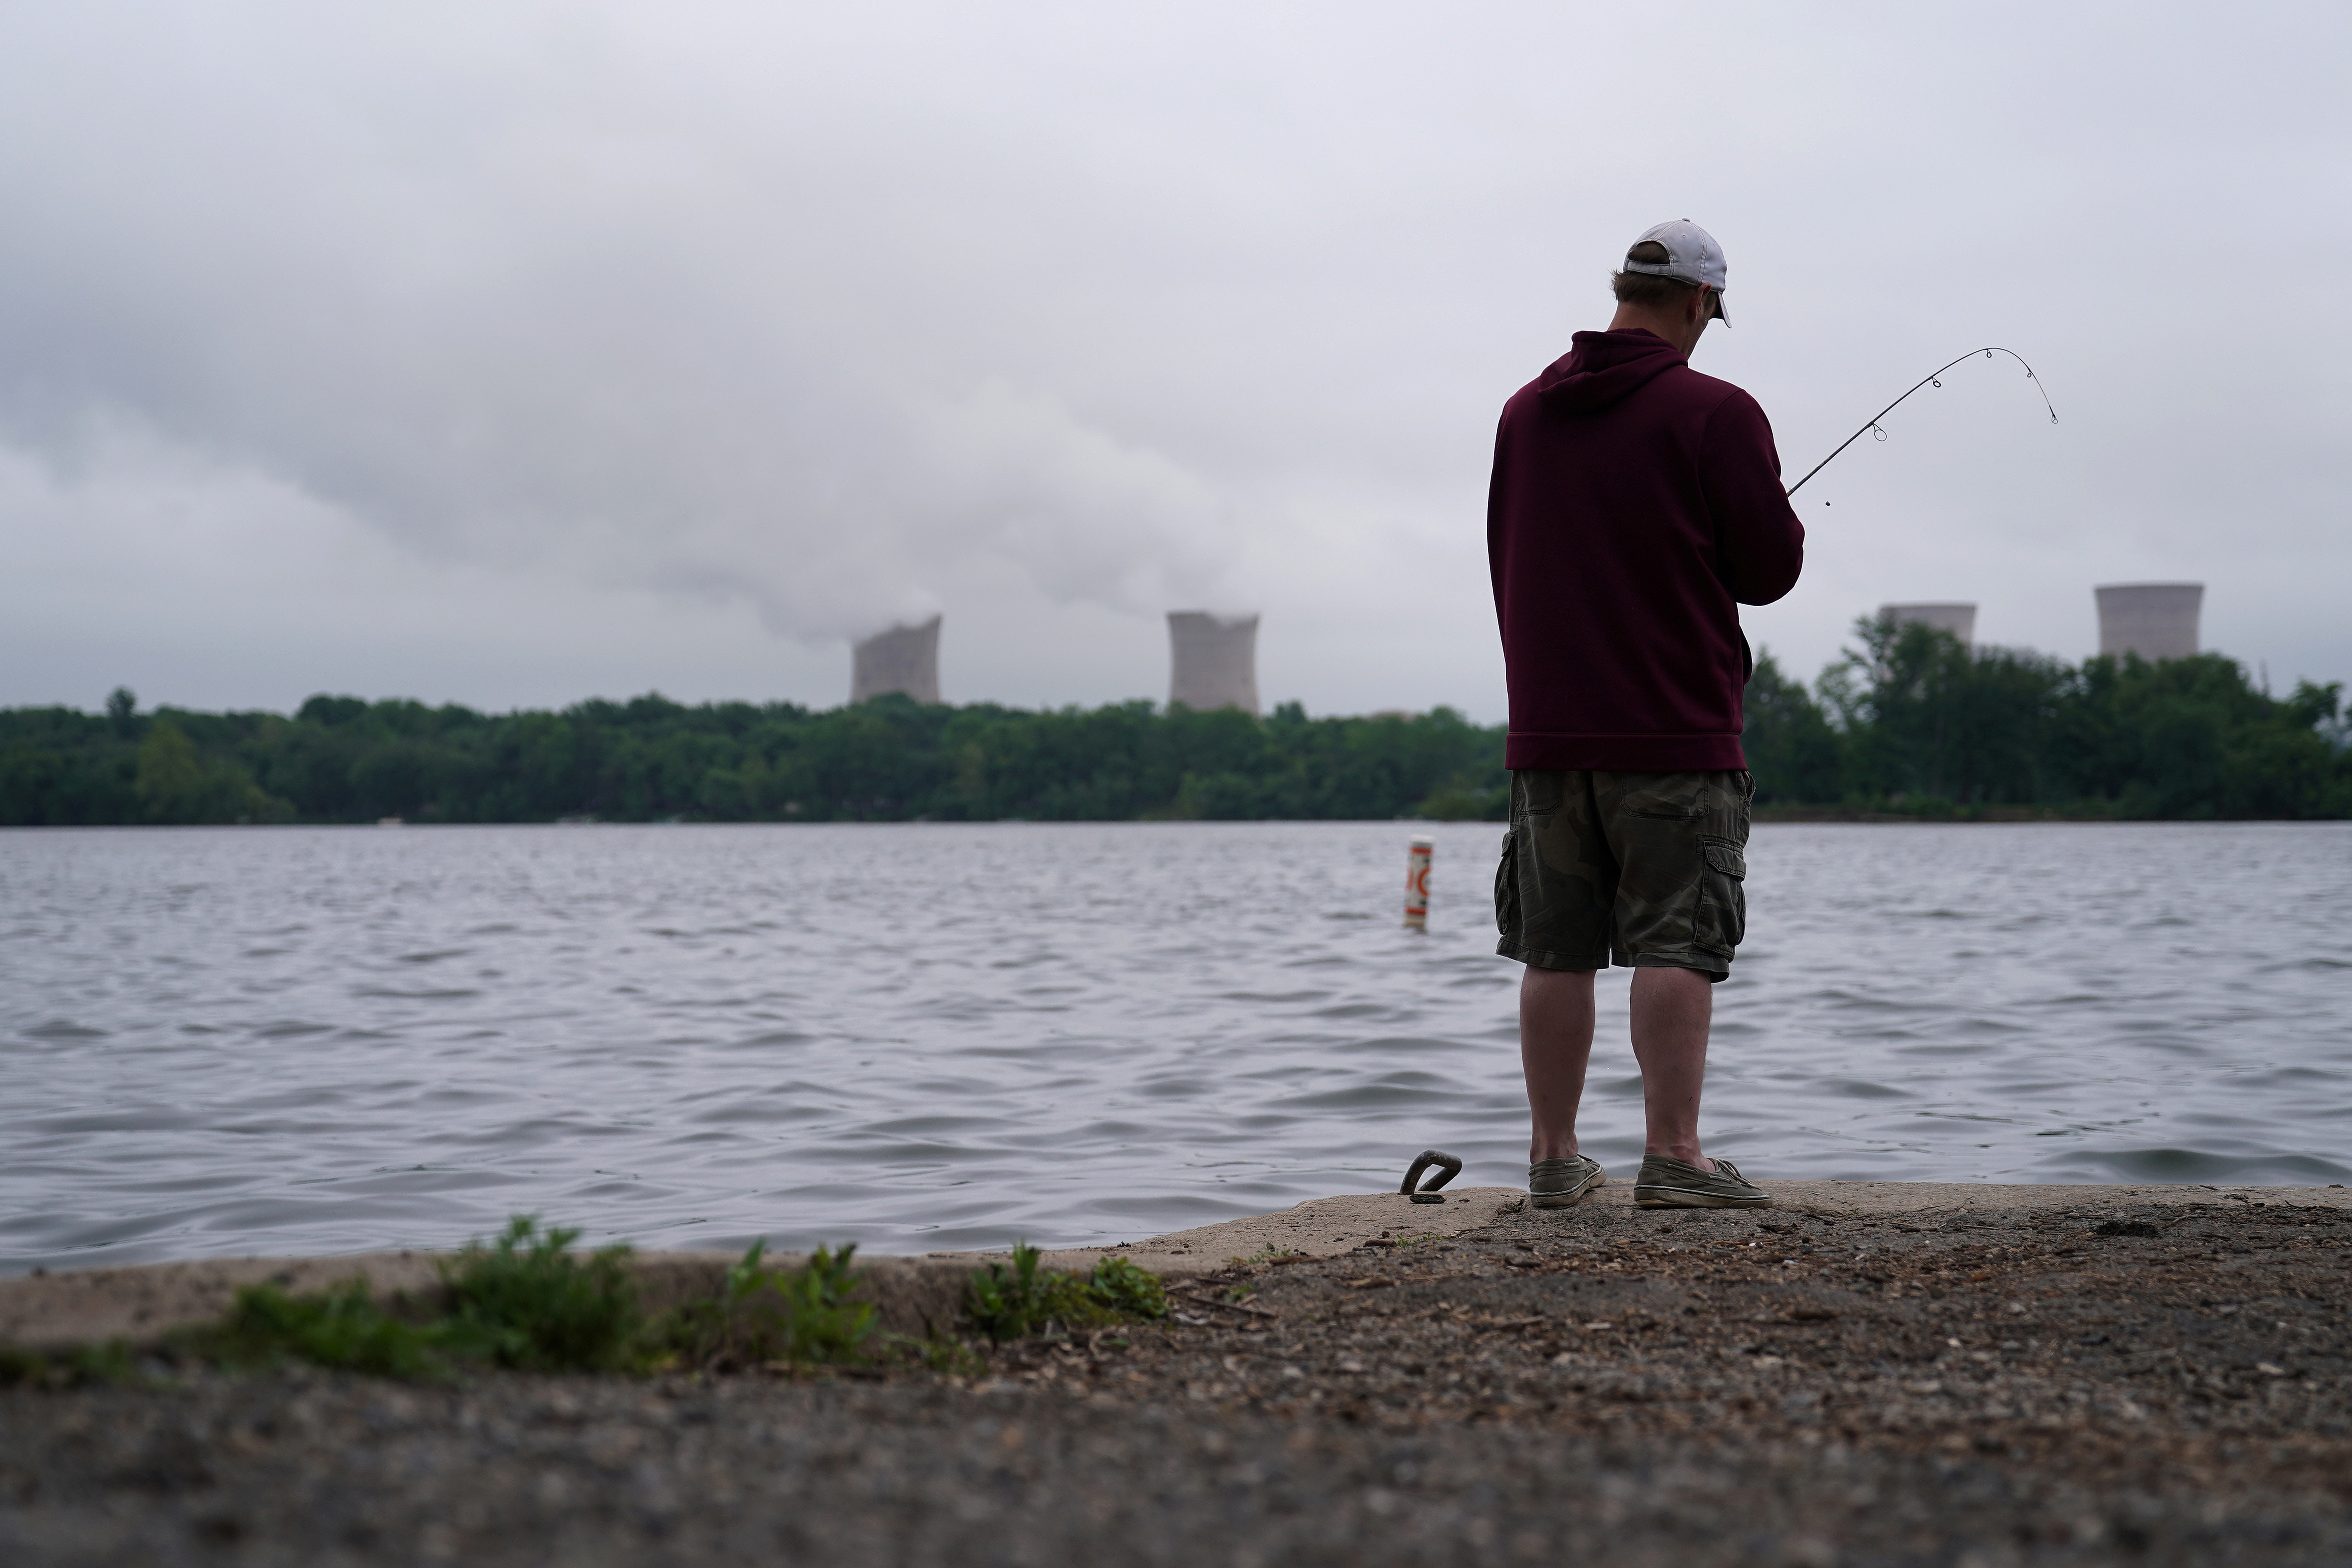 A man fishes in the Susquehanna River in front of the Three Mile Island Nuclear power plant in Goldsboro, Pennsylvania, U.S. May 30, 2017. REUTERS/Carlo Allegri - RC1670FDEB70